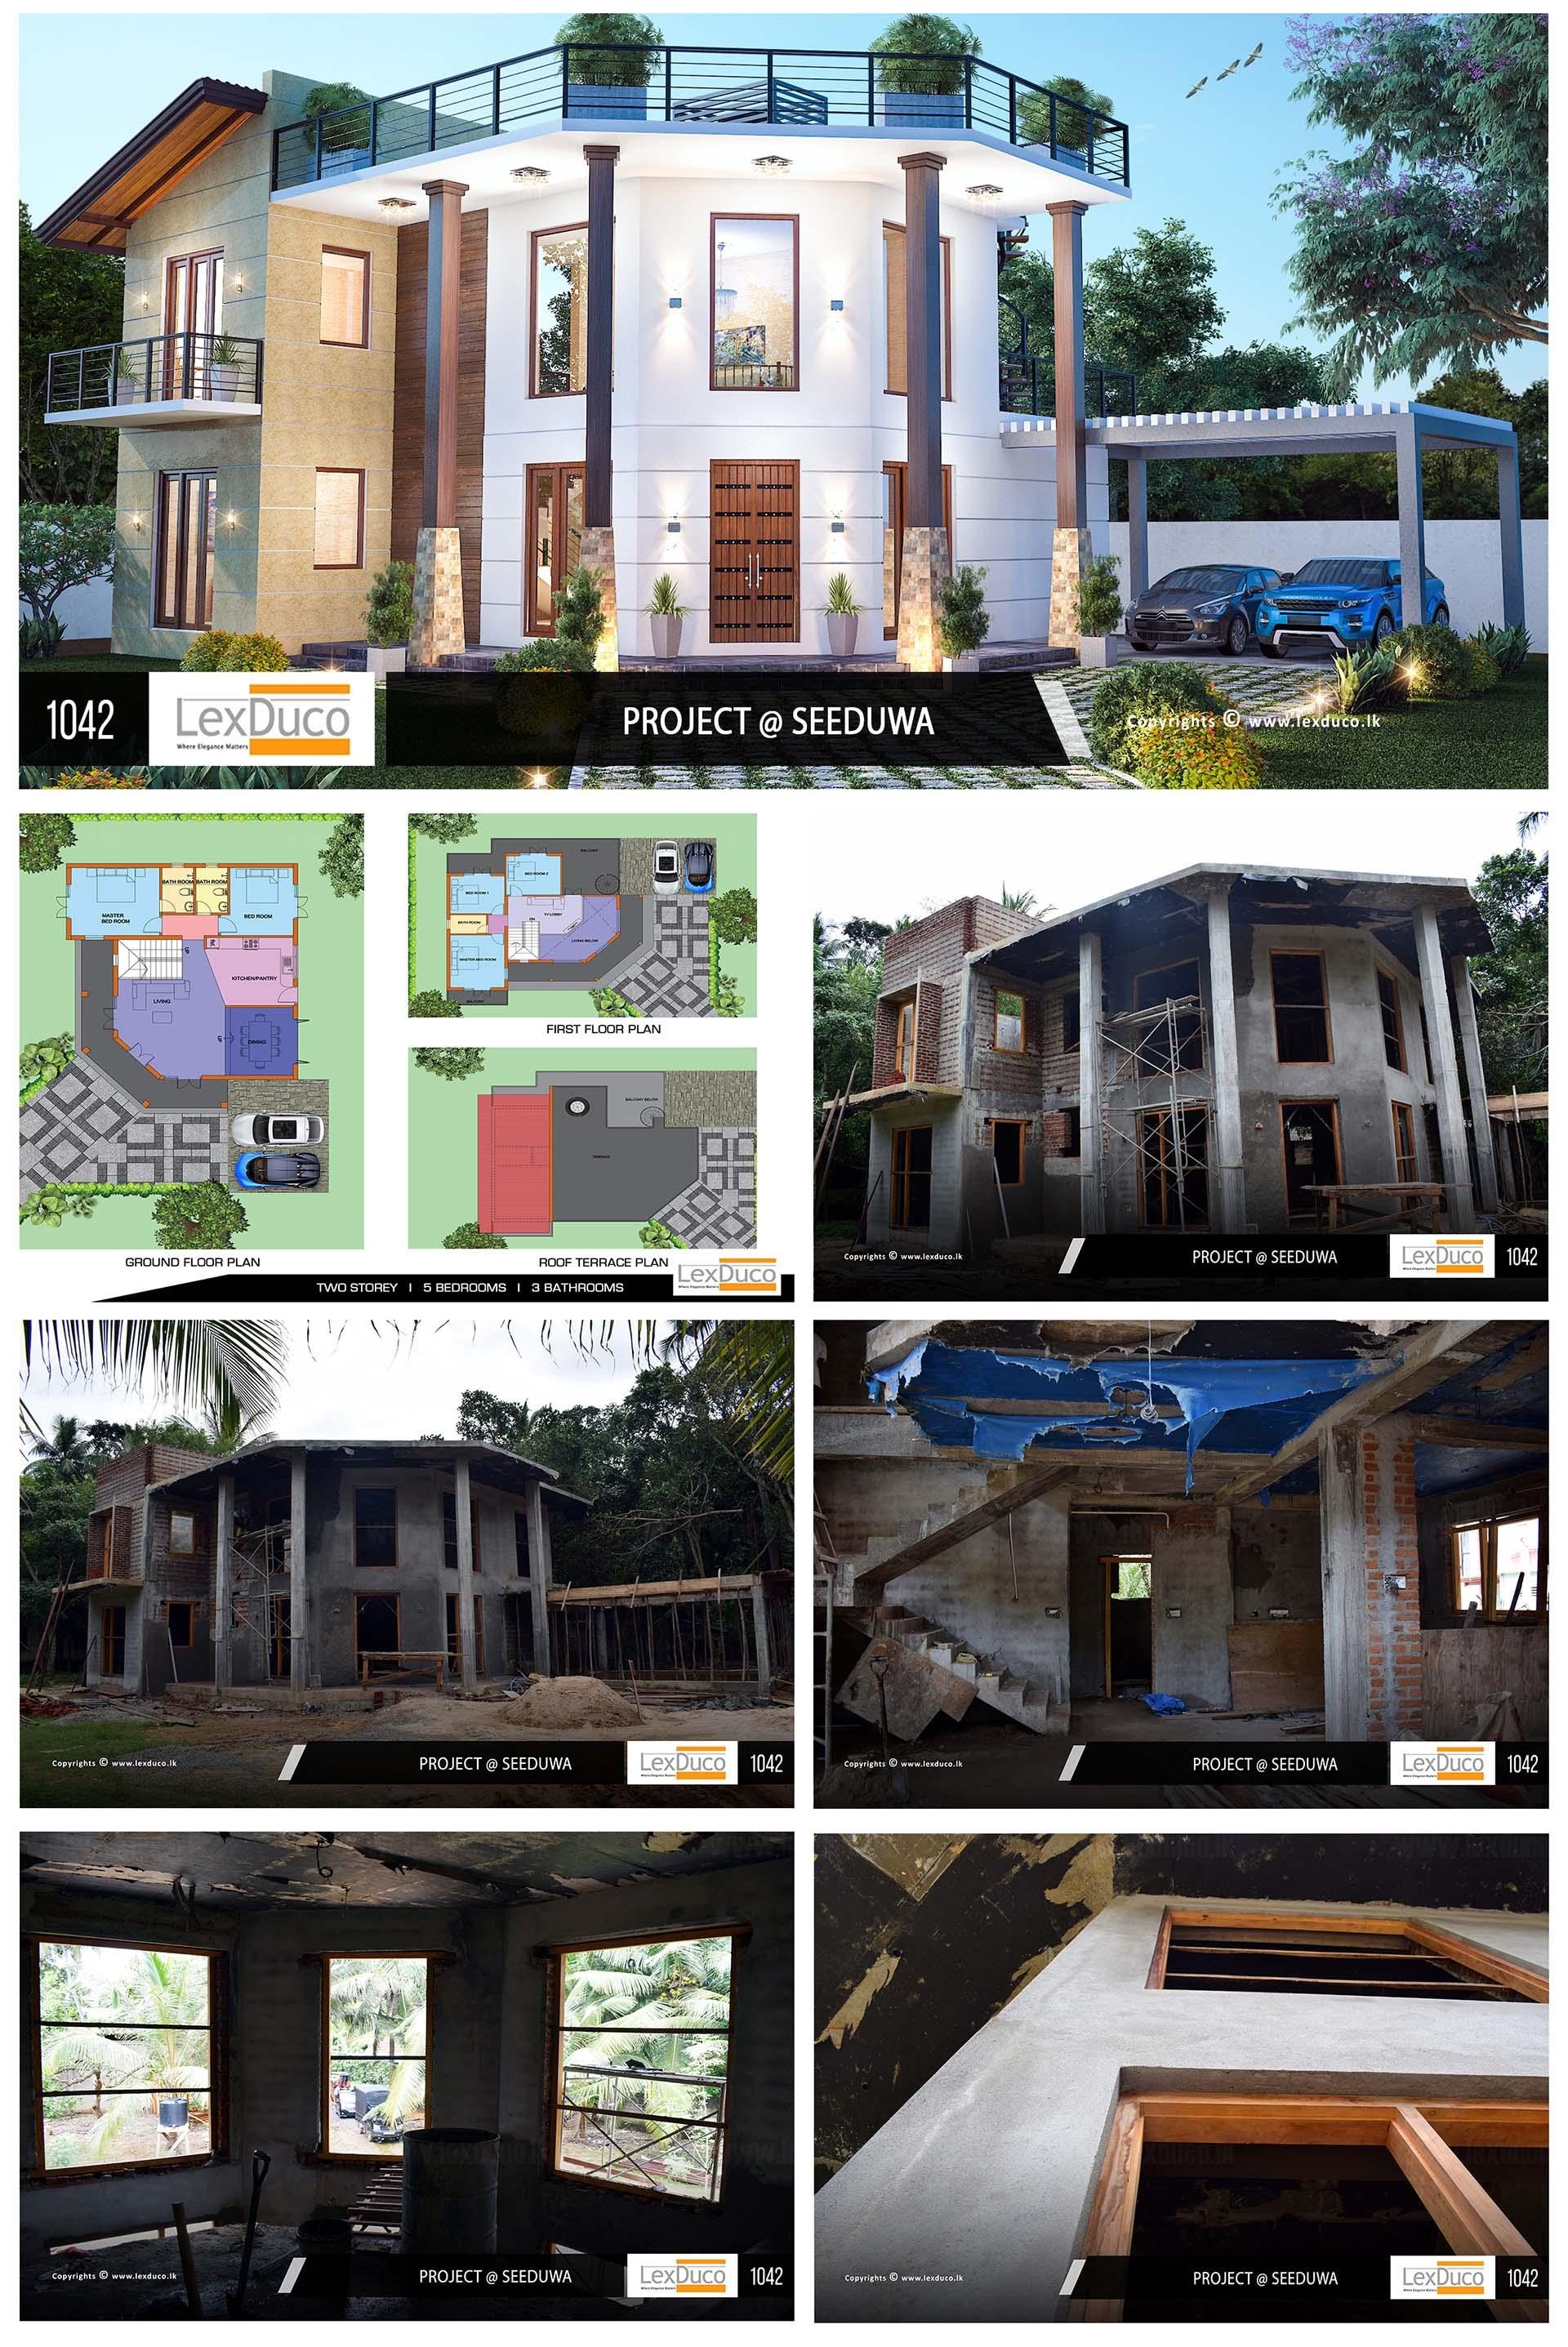 Residential Housing Project at Seeduwa | Lex Duco